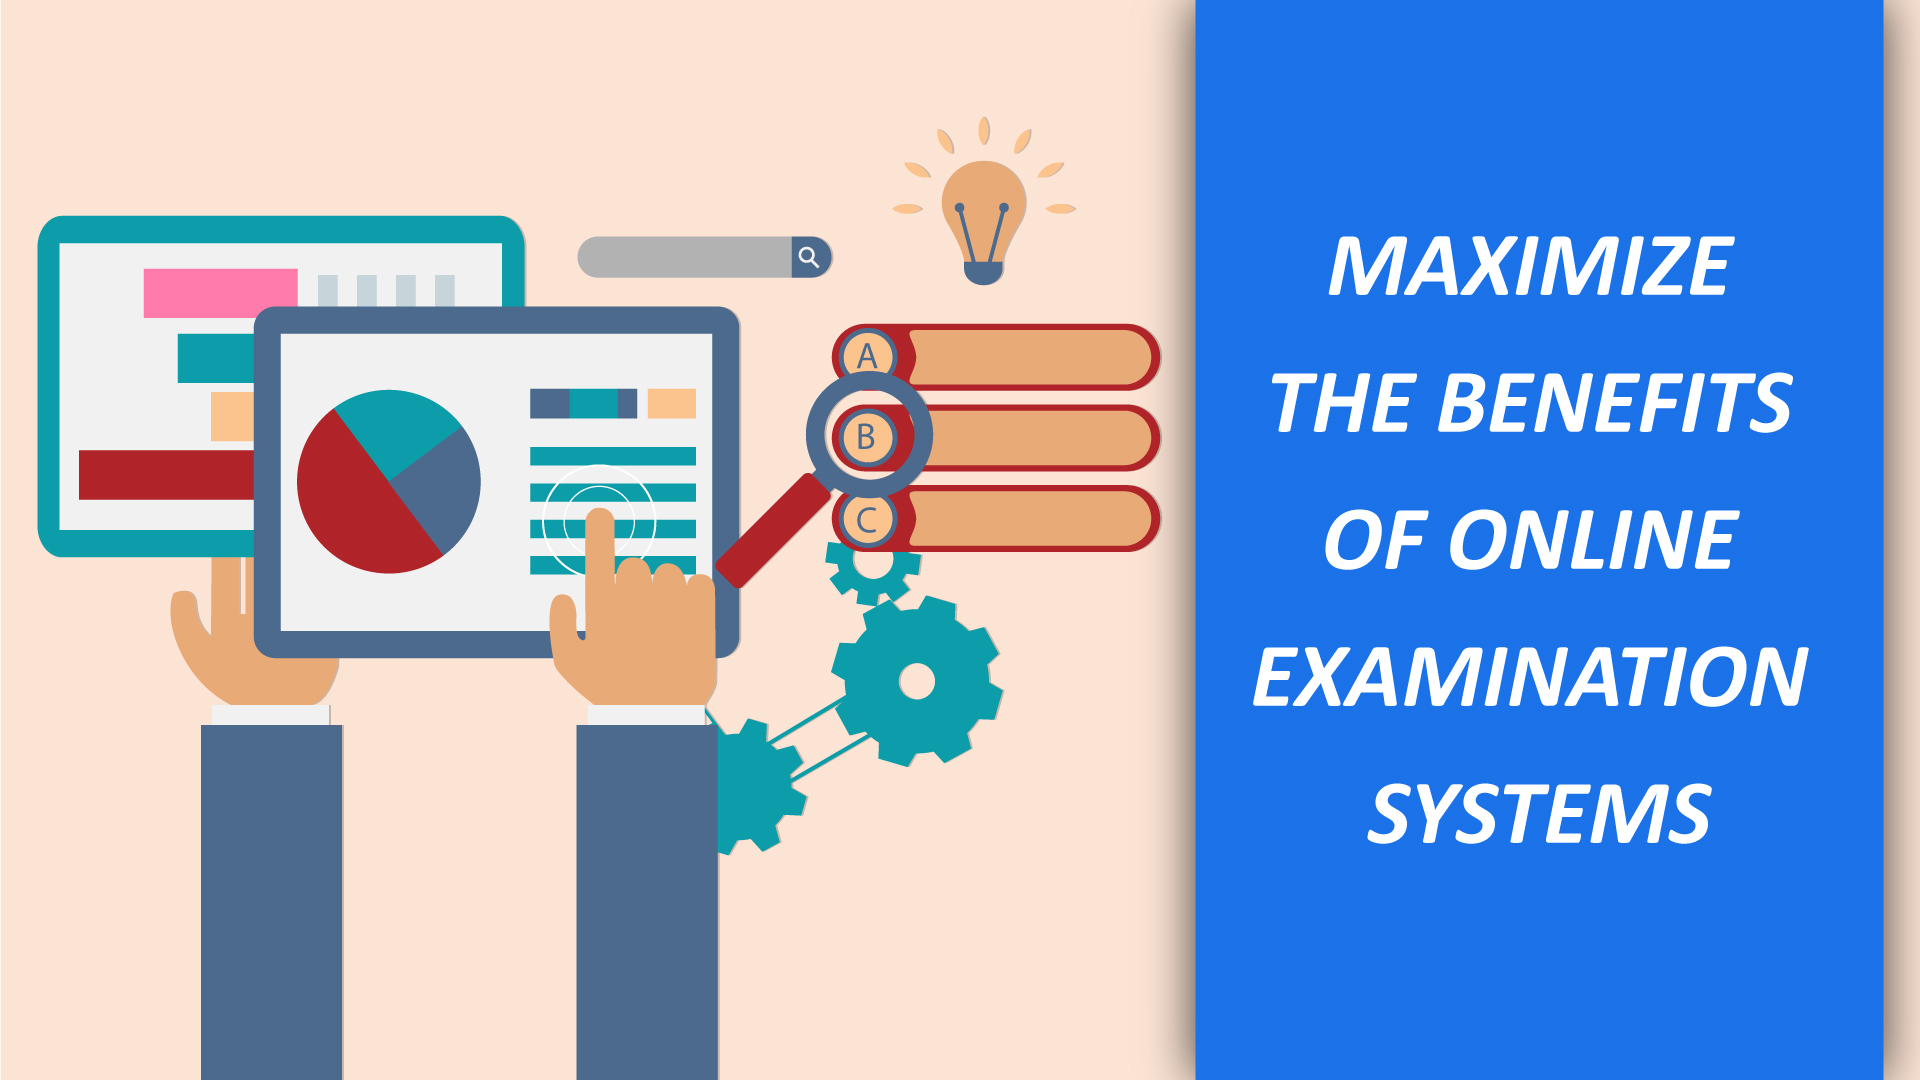 Maximize The Benefits Of Online Examination Systems